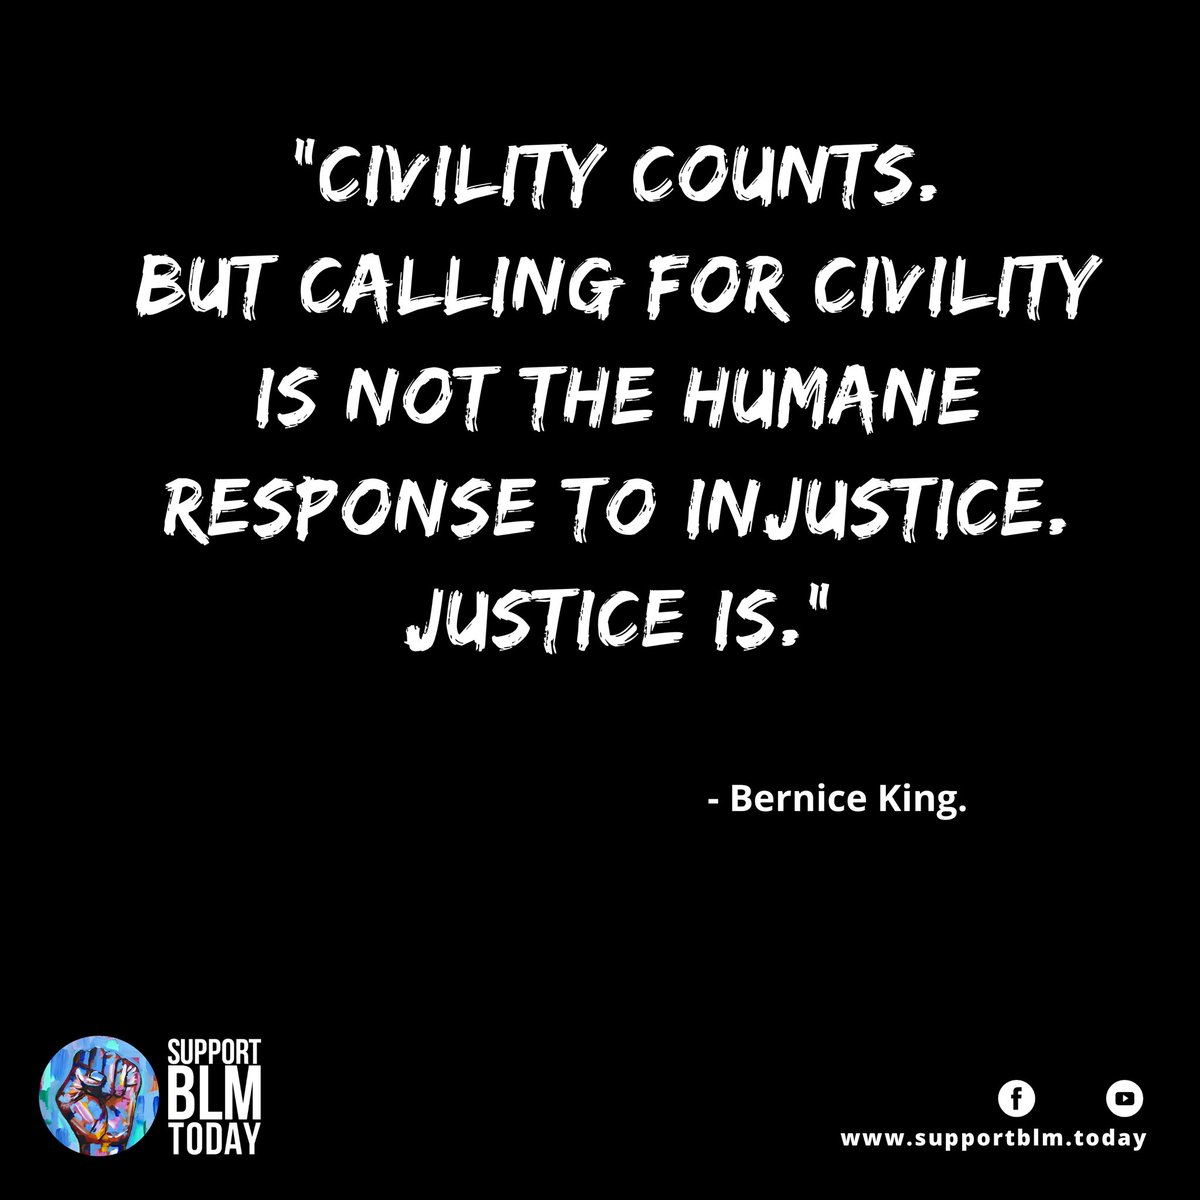 Civility counts. But calling for civility is not the humane response to injustice. Justice is.    #blacklivesmatter #blmquotes #blm #blm2021 #equality #racism #solidarity #blacklives #mlk #blmmovement #nojusticenopeace #blacklivesmatterplaza #blmprotest